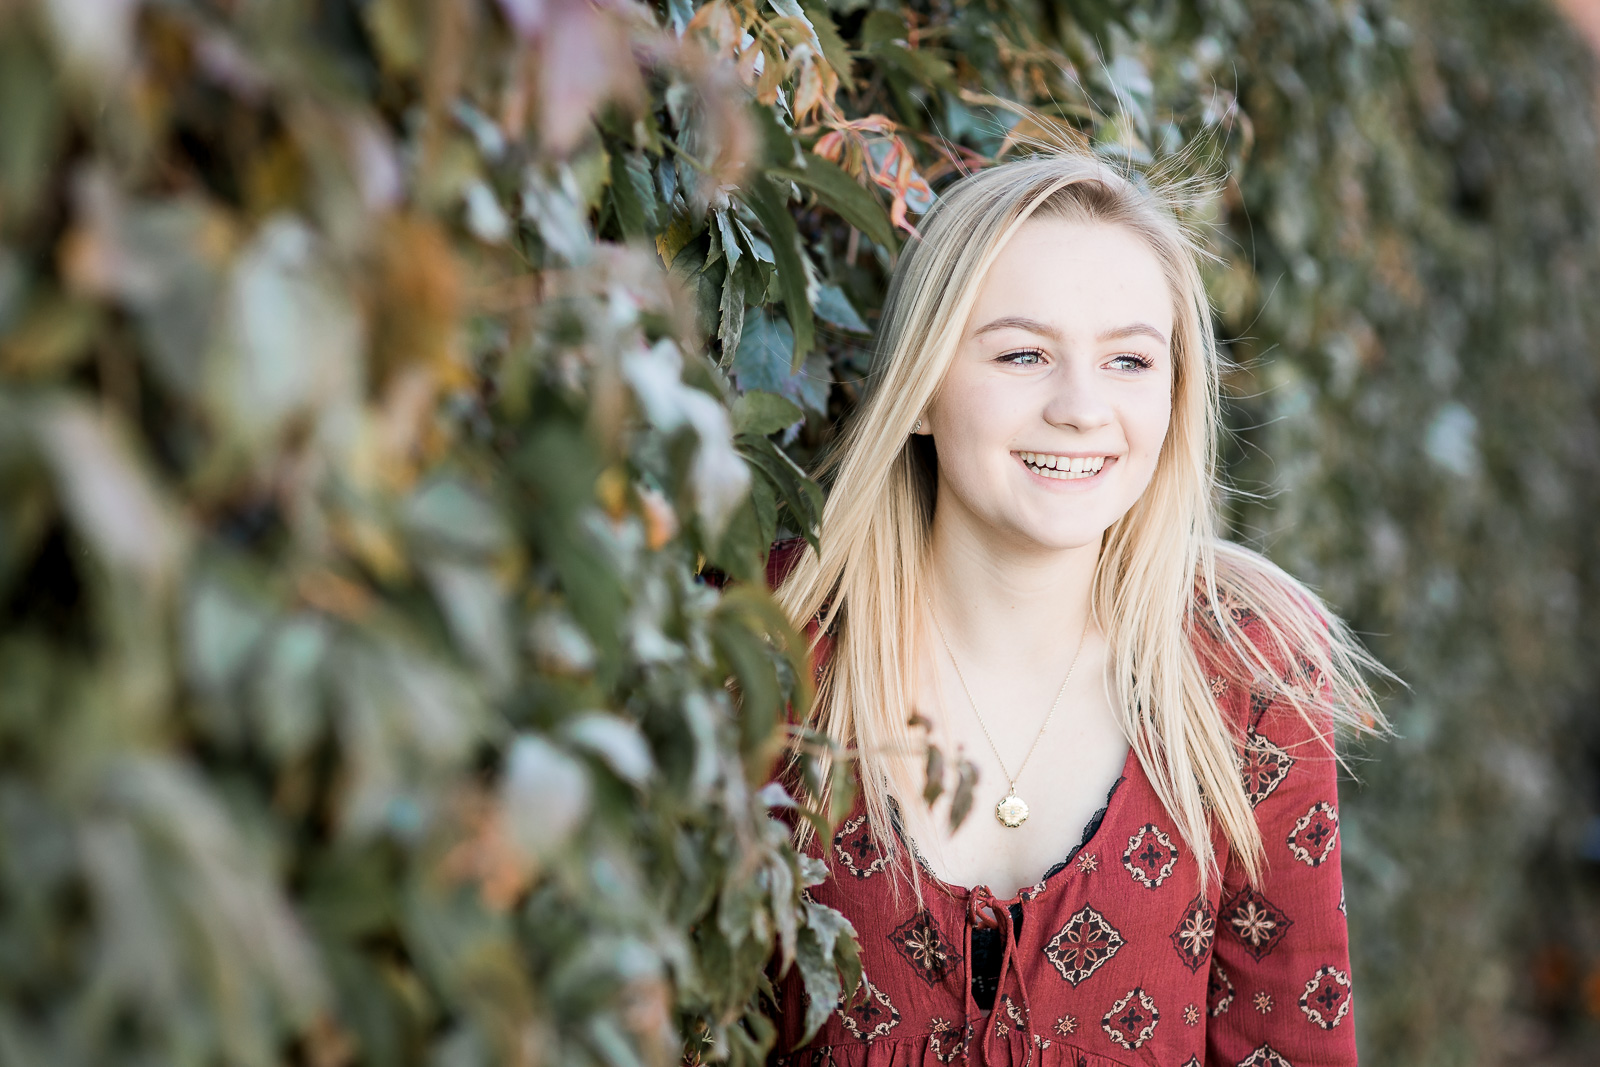 Downtown Laramie Senior Portrait Session by Wyoming base photographer, Megan Lee Photography